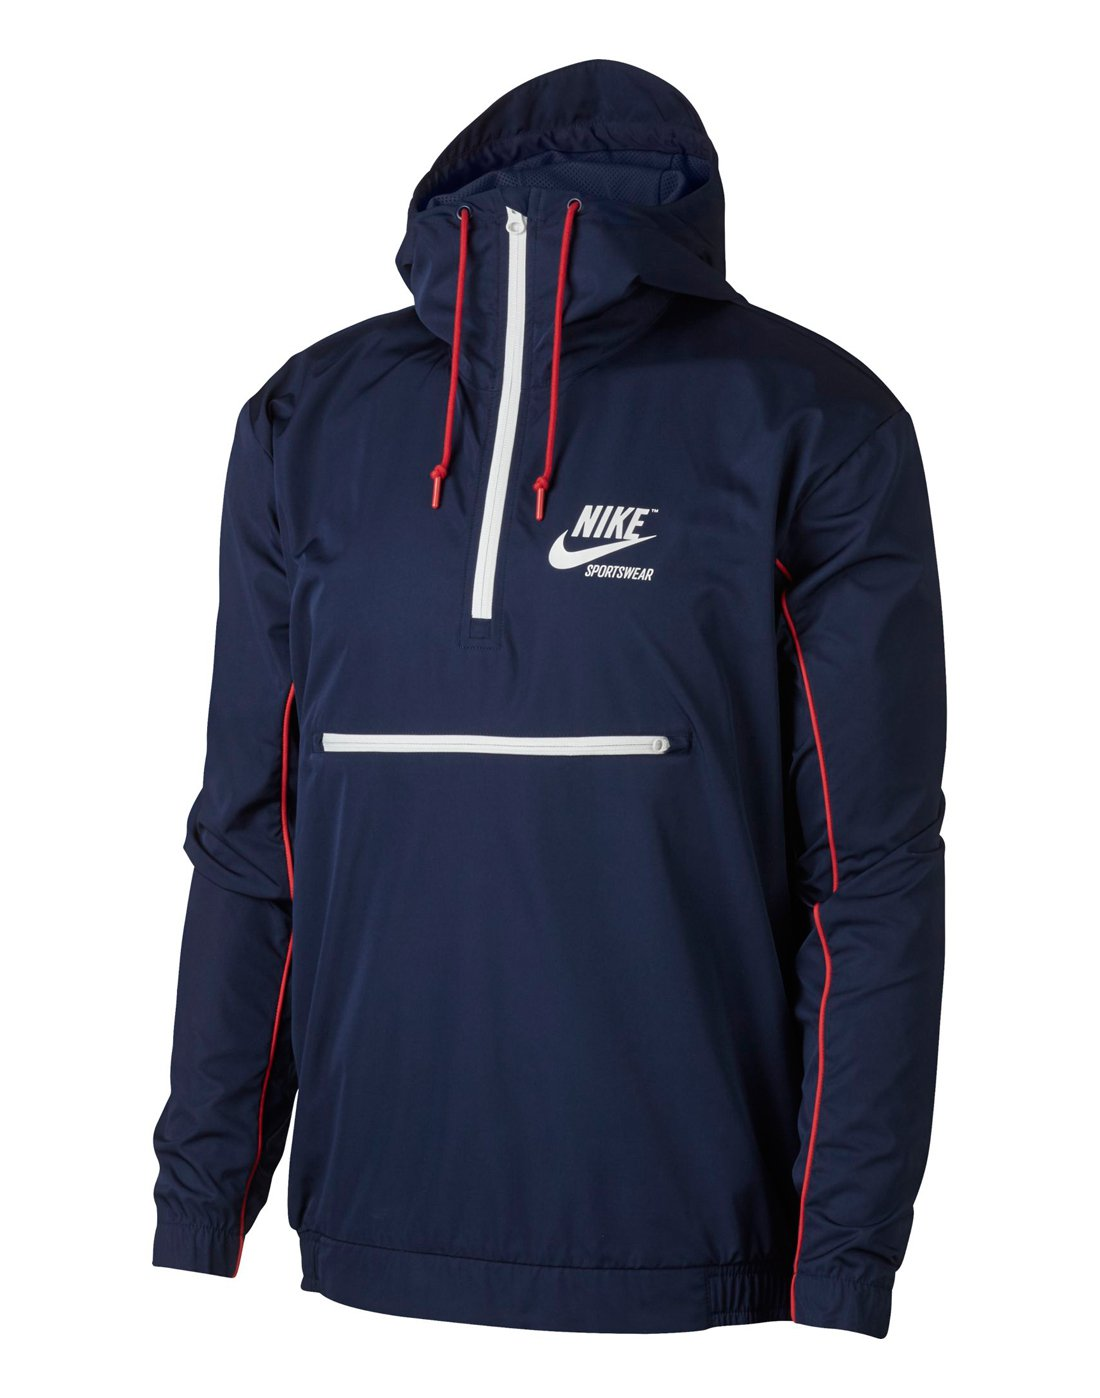 Nike. Mens Archive Woven Jacket. Mens Archive Woven Jacket ... 5561cc4e2